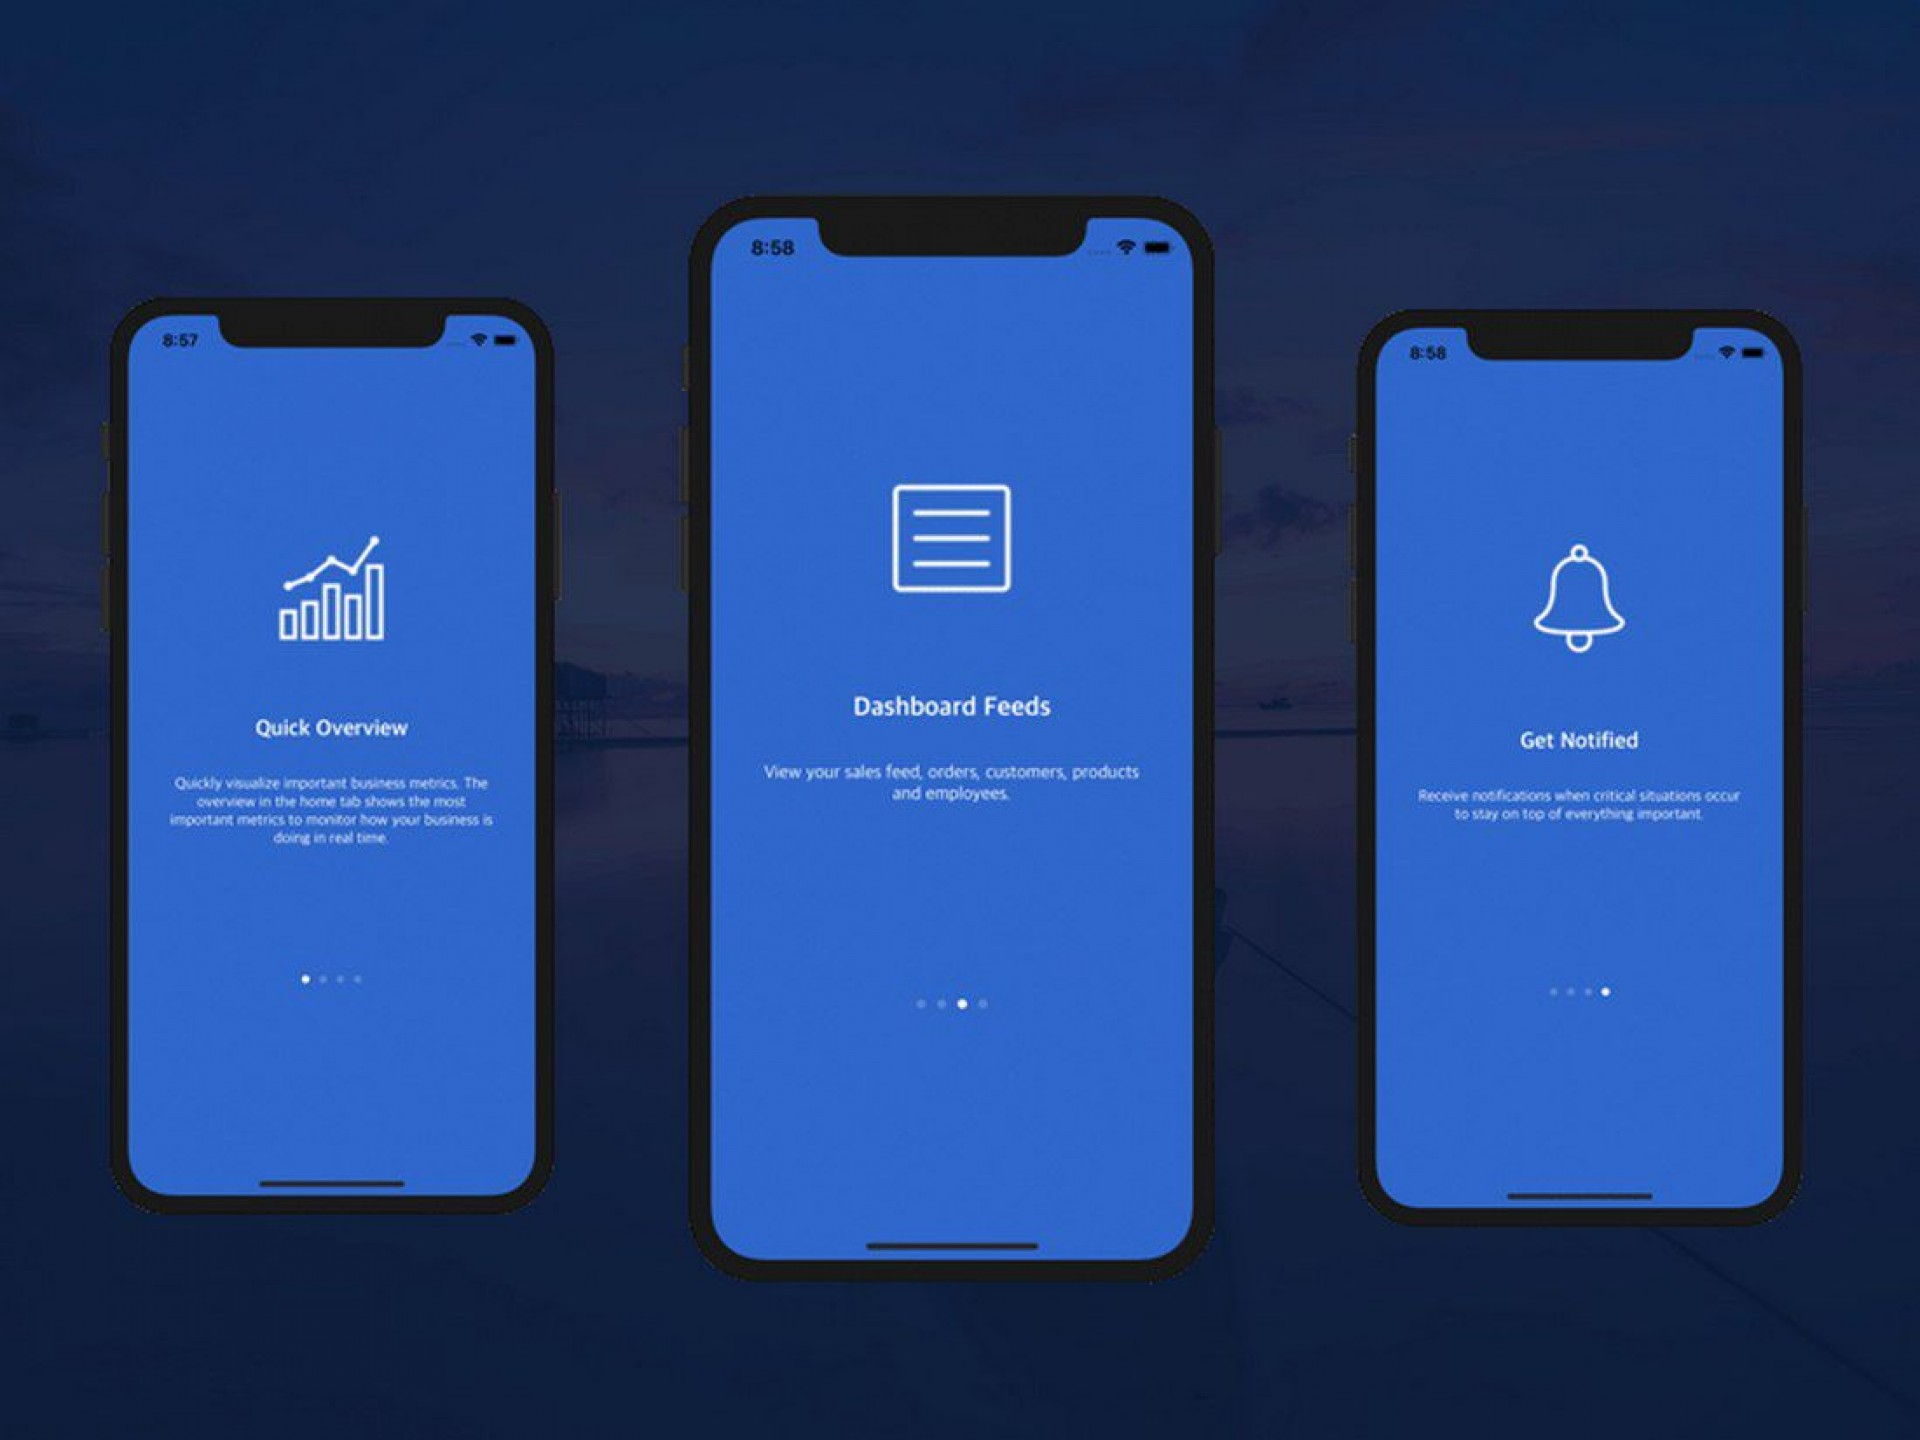 004 Top Iphone App Design Template Concept  Templates Io Sketch Psd Free Download1920